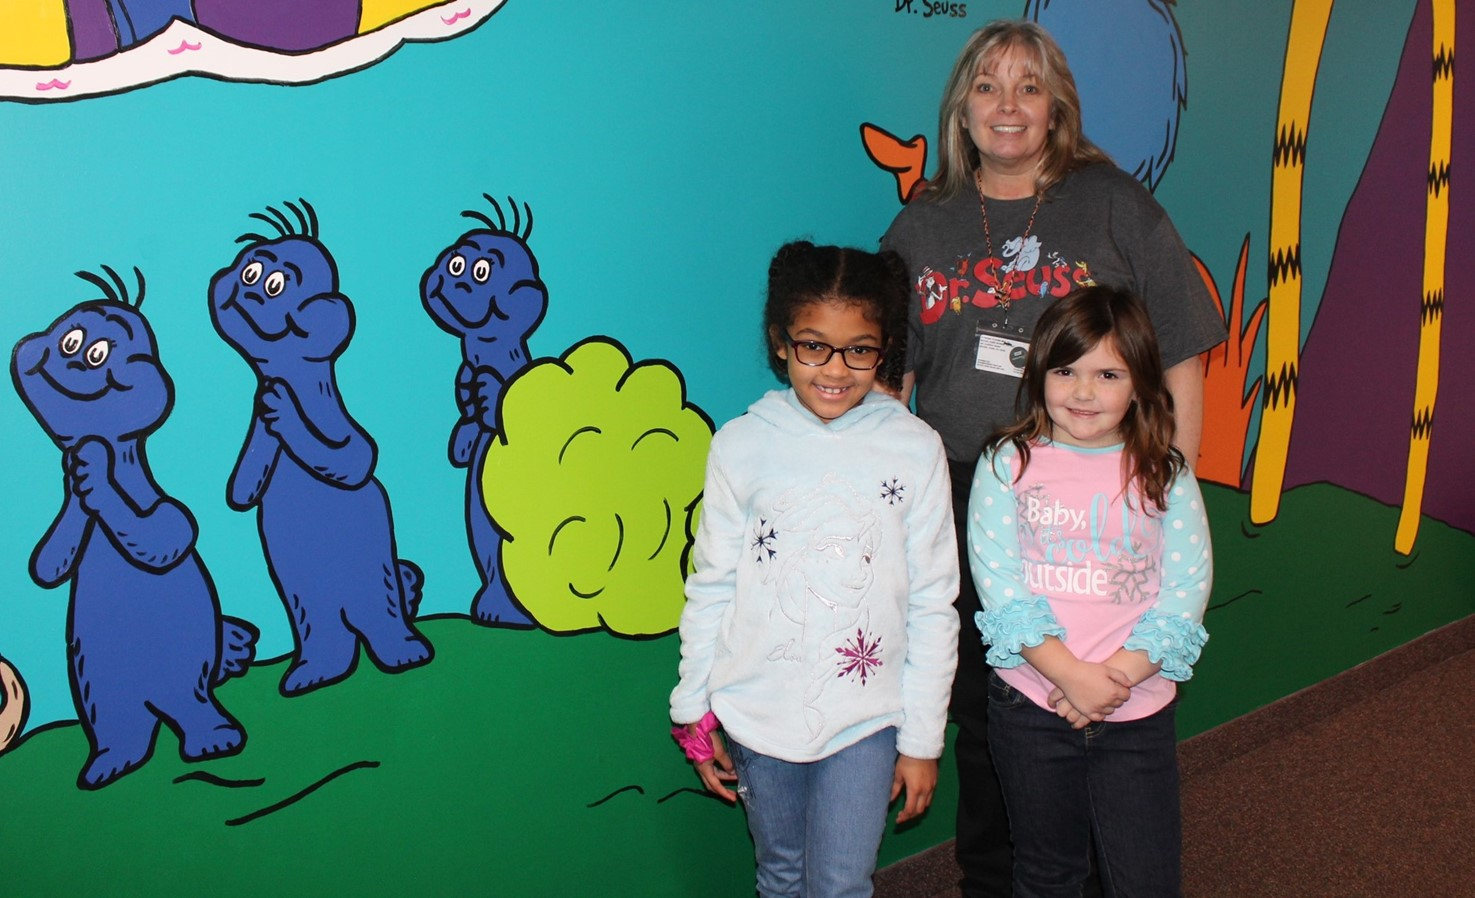 Teacher and two students in front of the mural